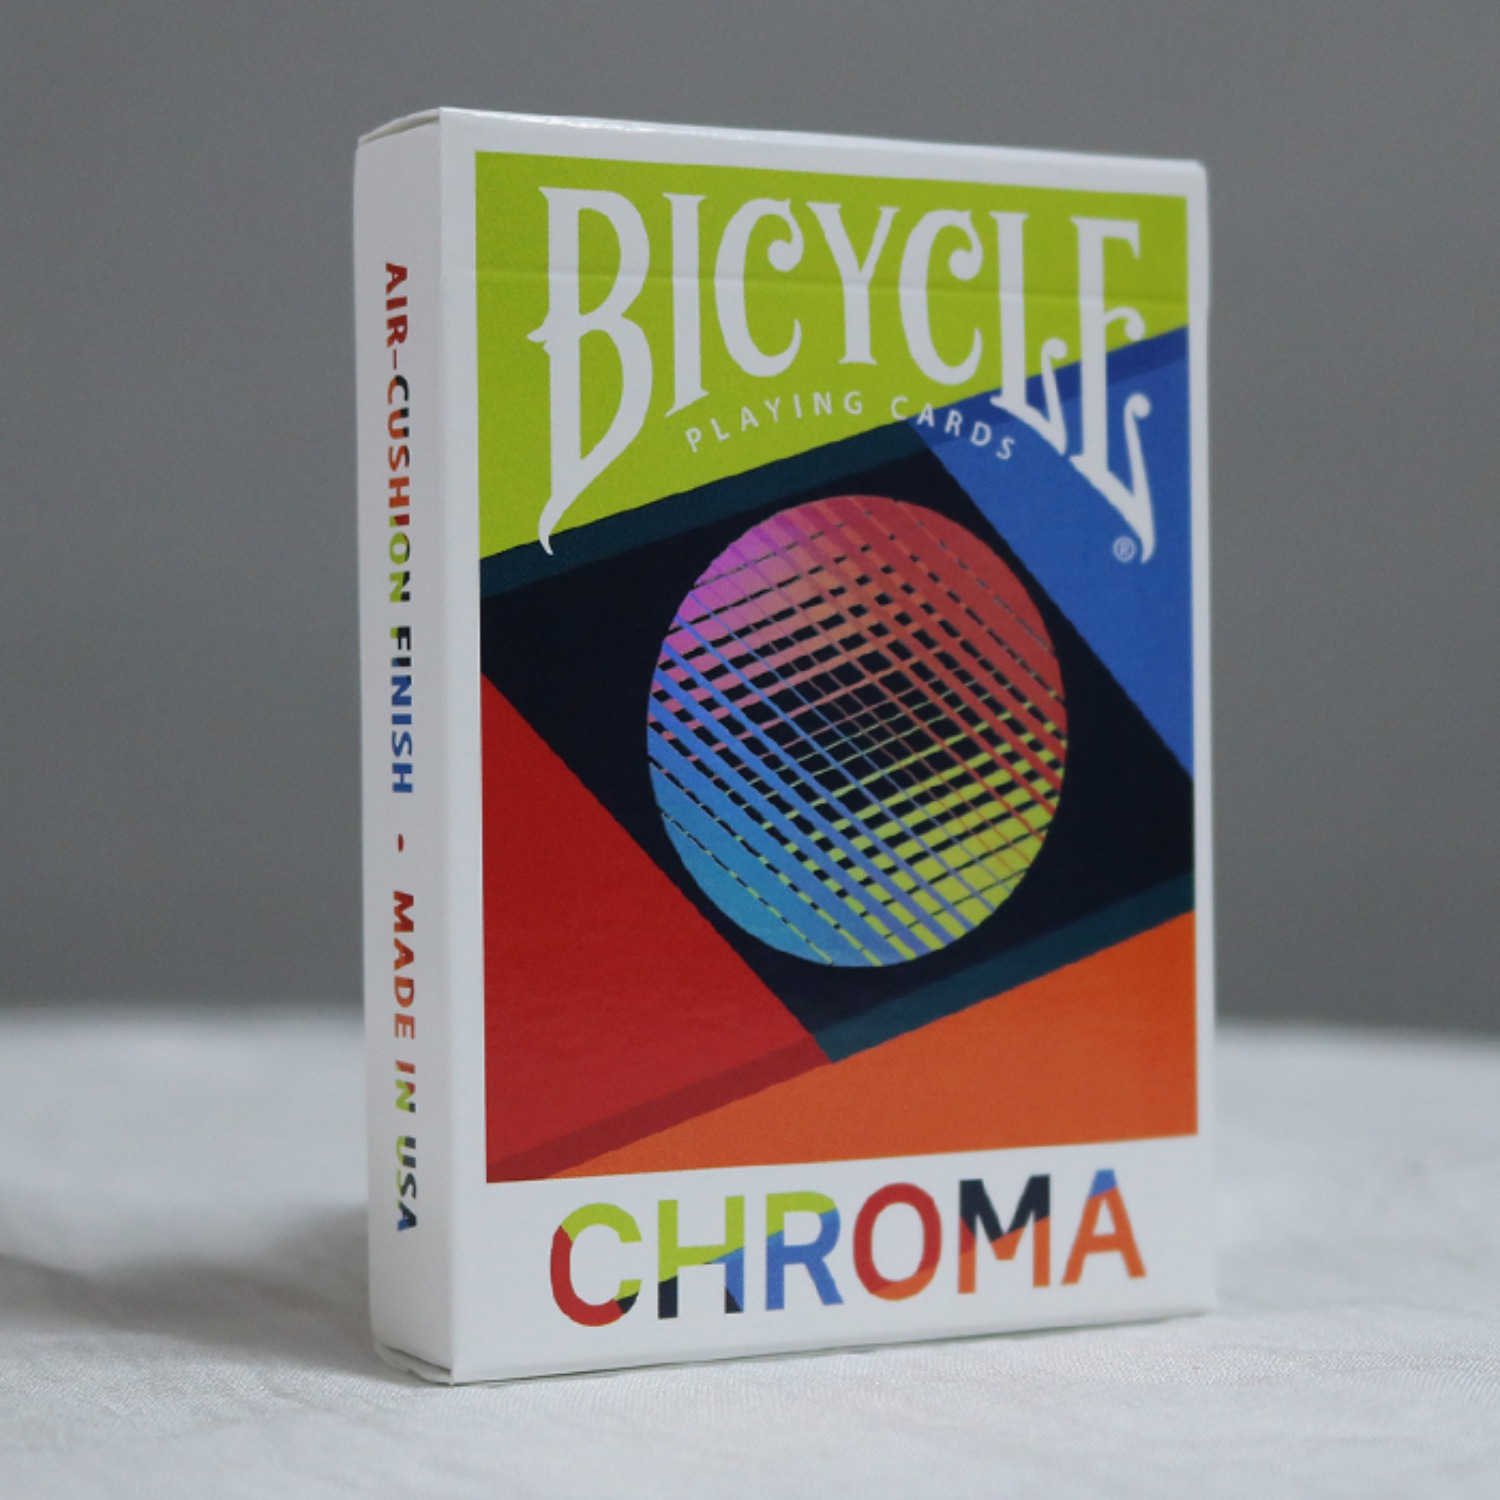 [크로마덱] Bicycle Chroma